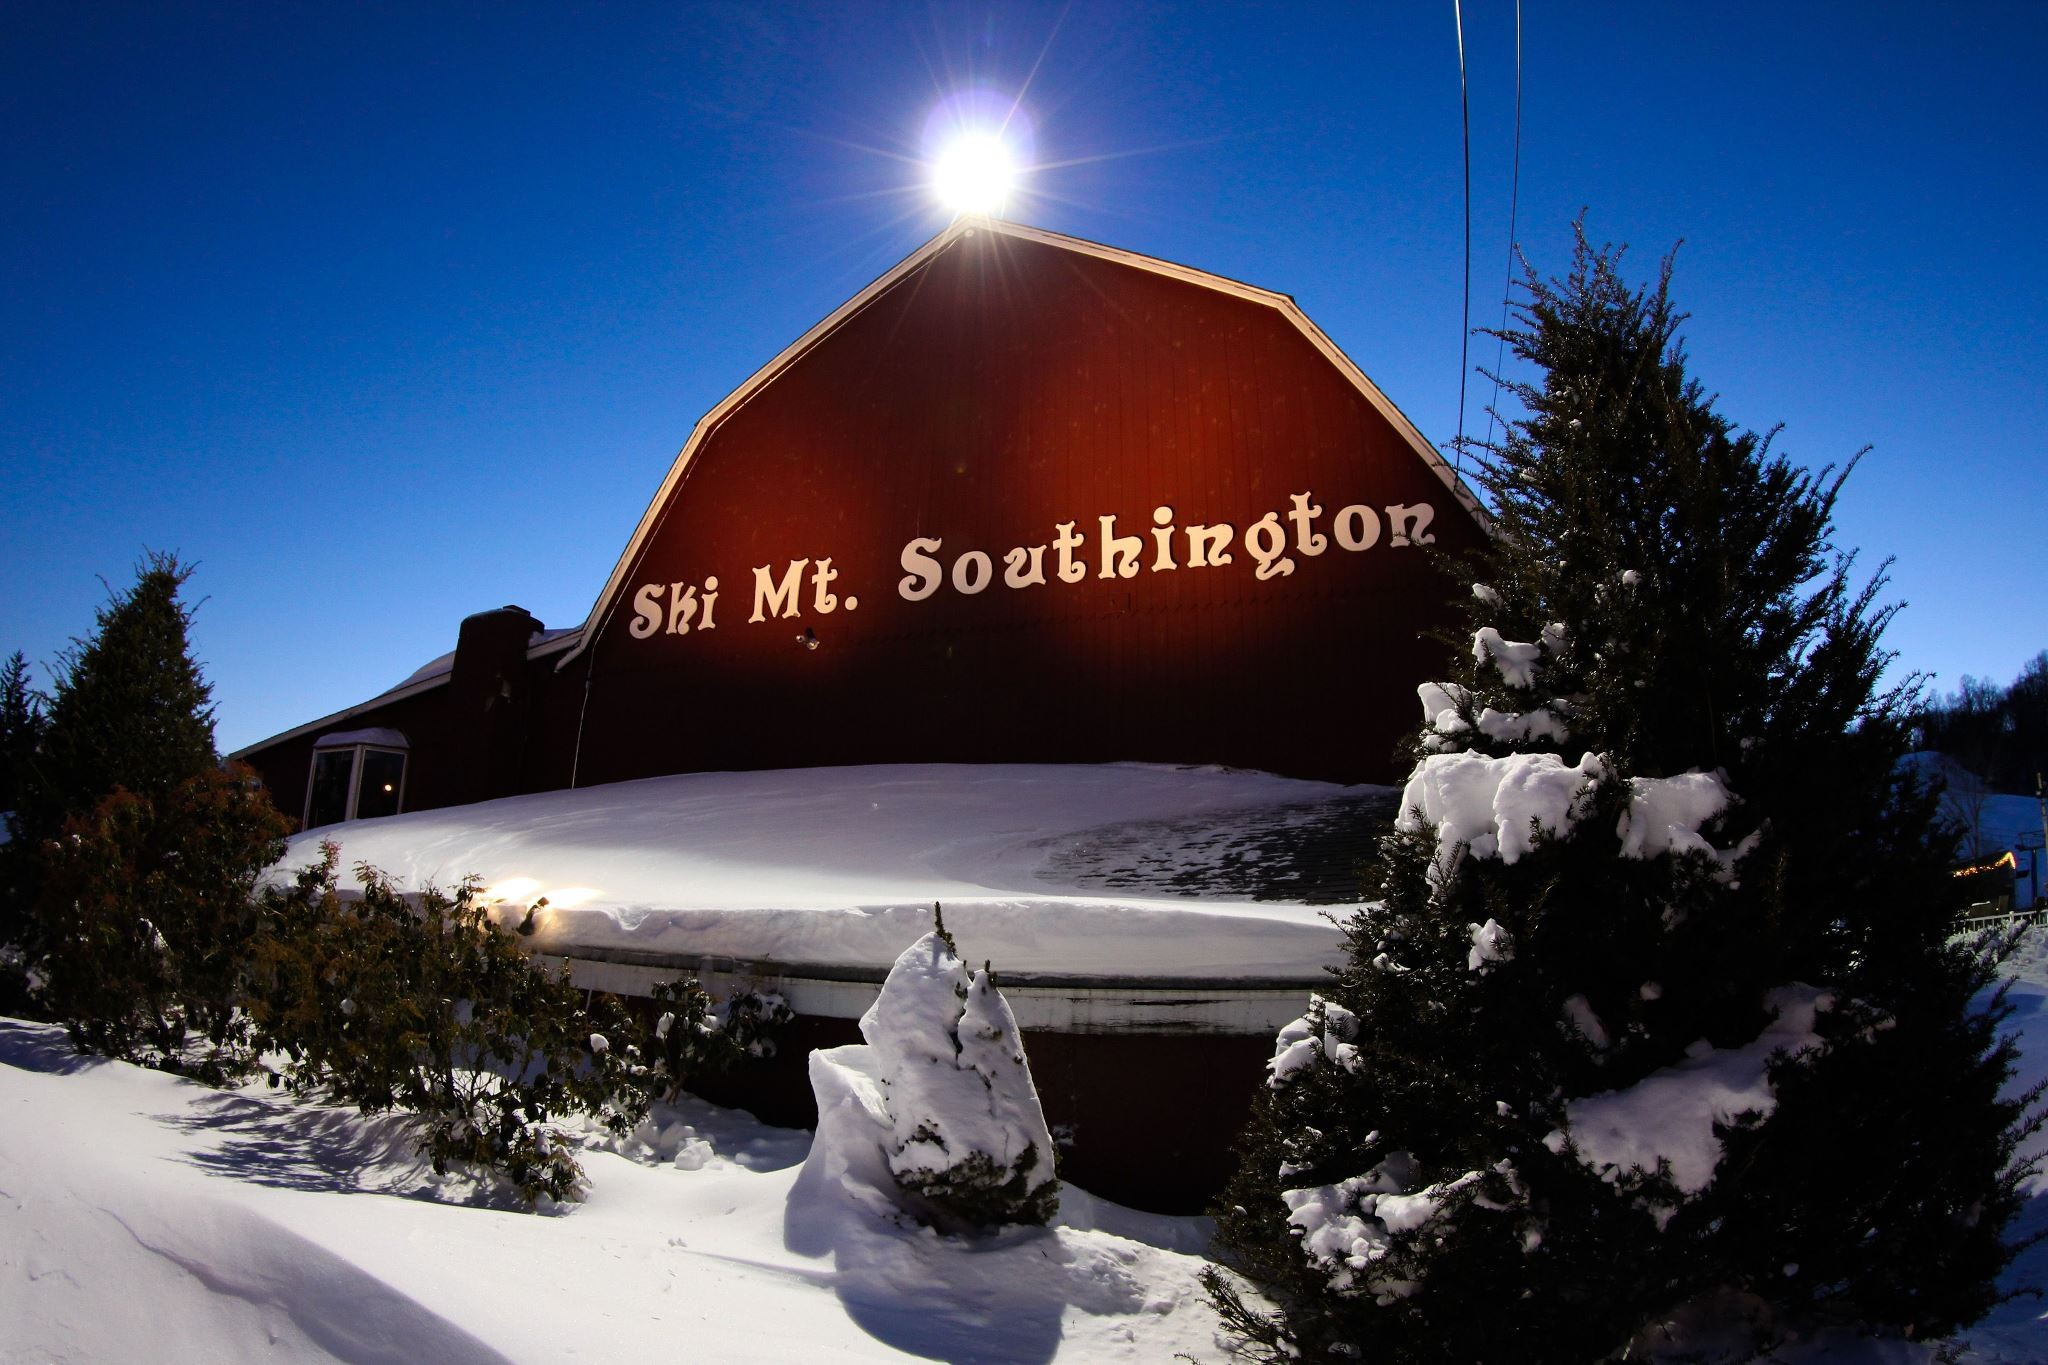 Lots of new snow at Mt. Southington.undefined